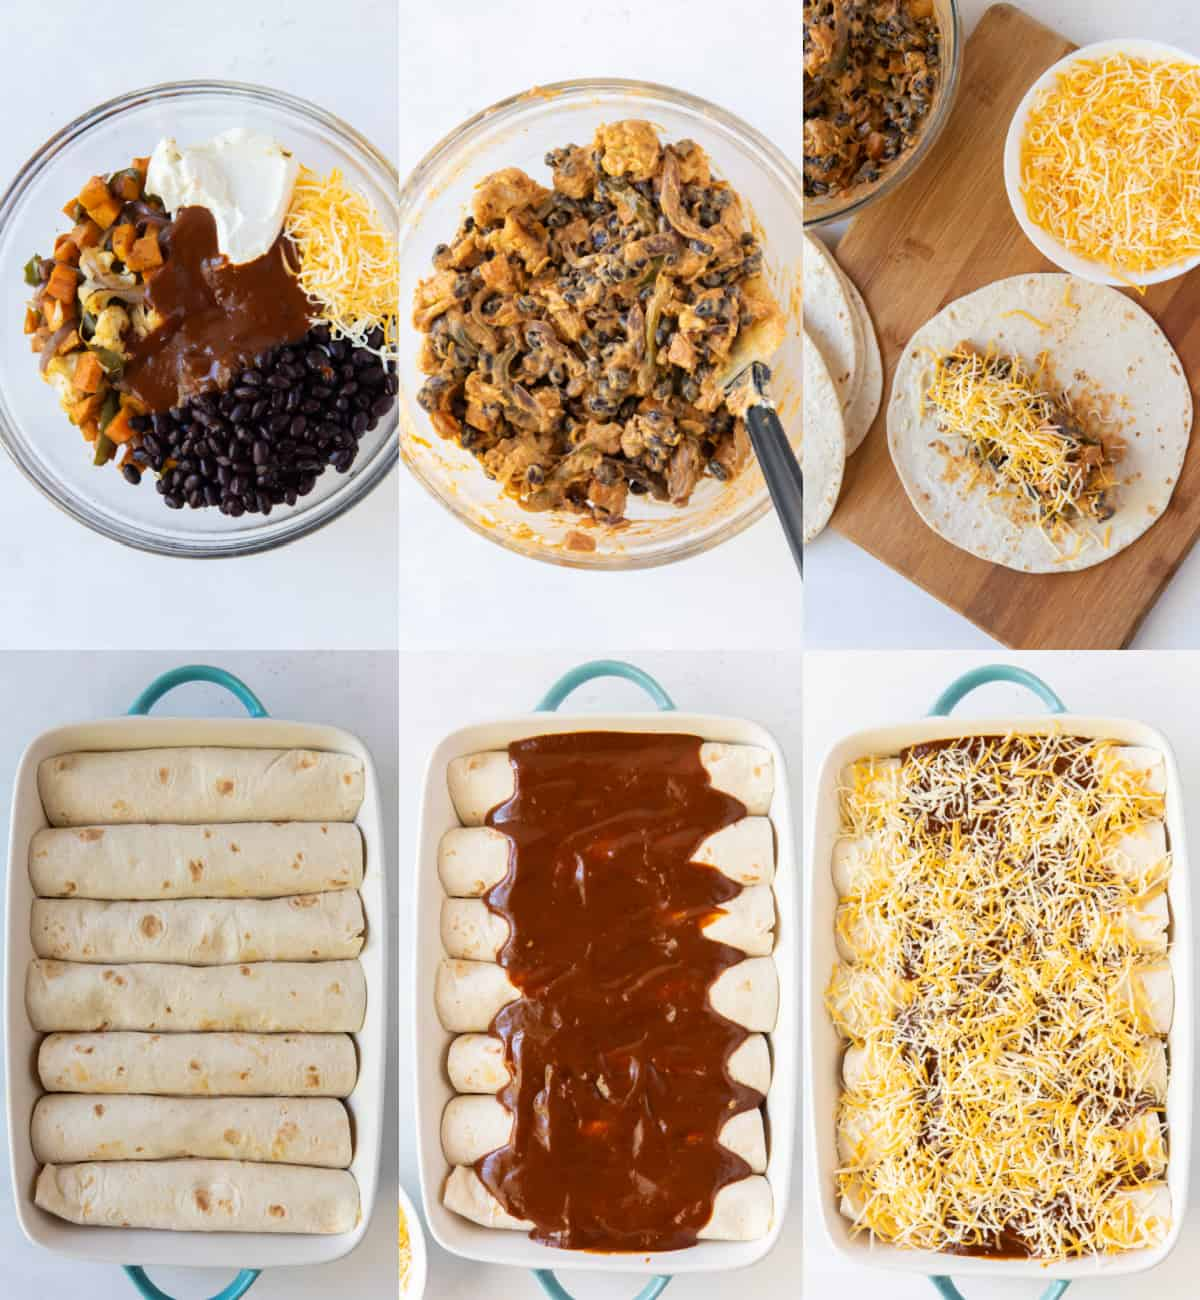 Six photos showing the process of making enchiladas, from combining the veggie mixture to filling the tortillas and baking.